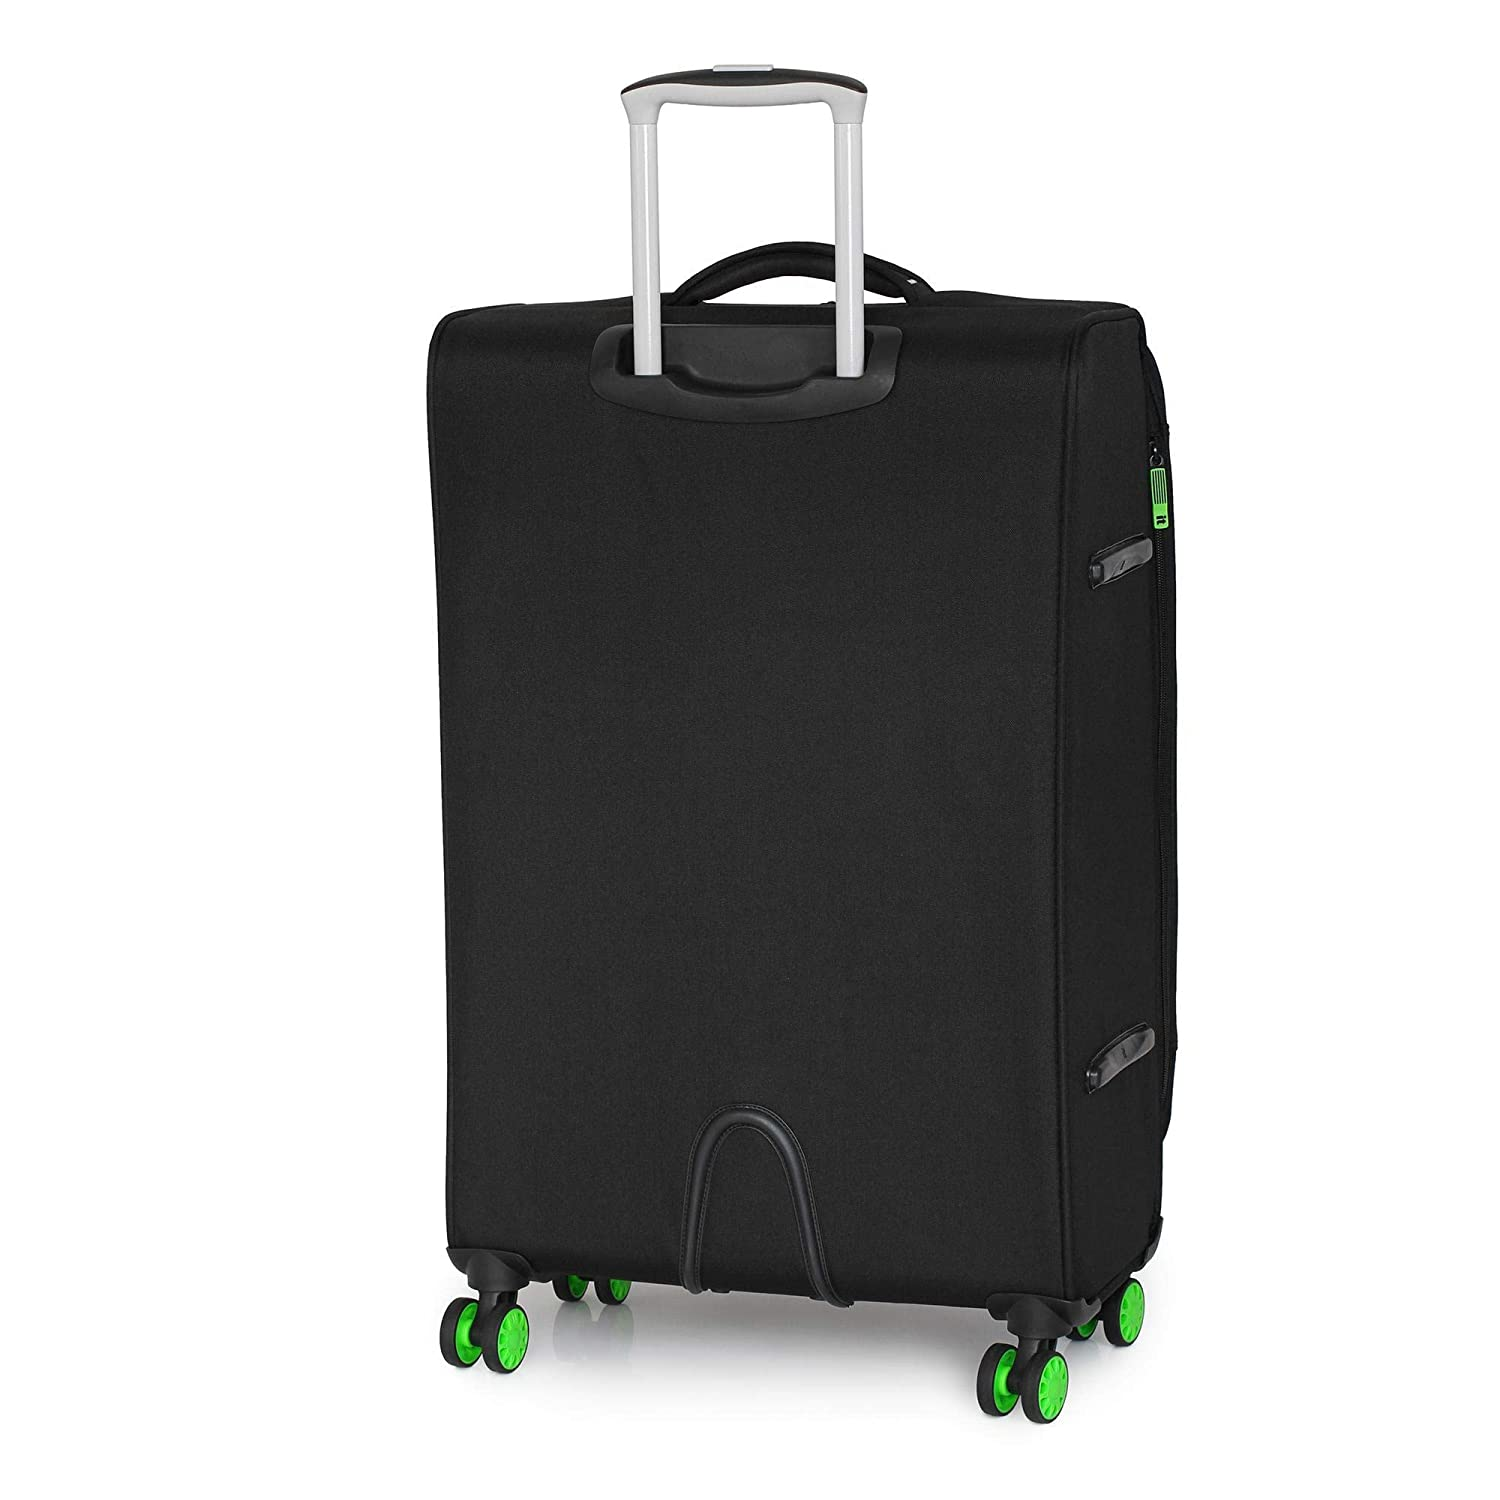 Dark Shadow//Gun Metal it luggage Filament 27.4 8 Wheel Spinner